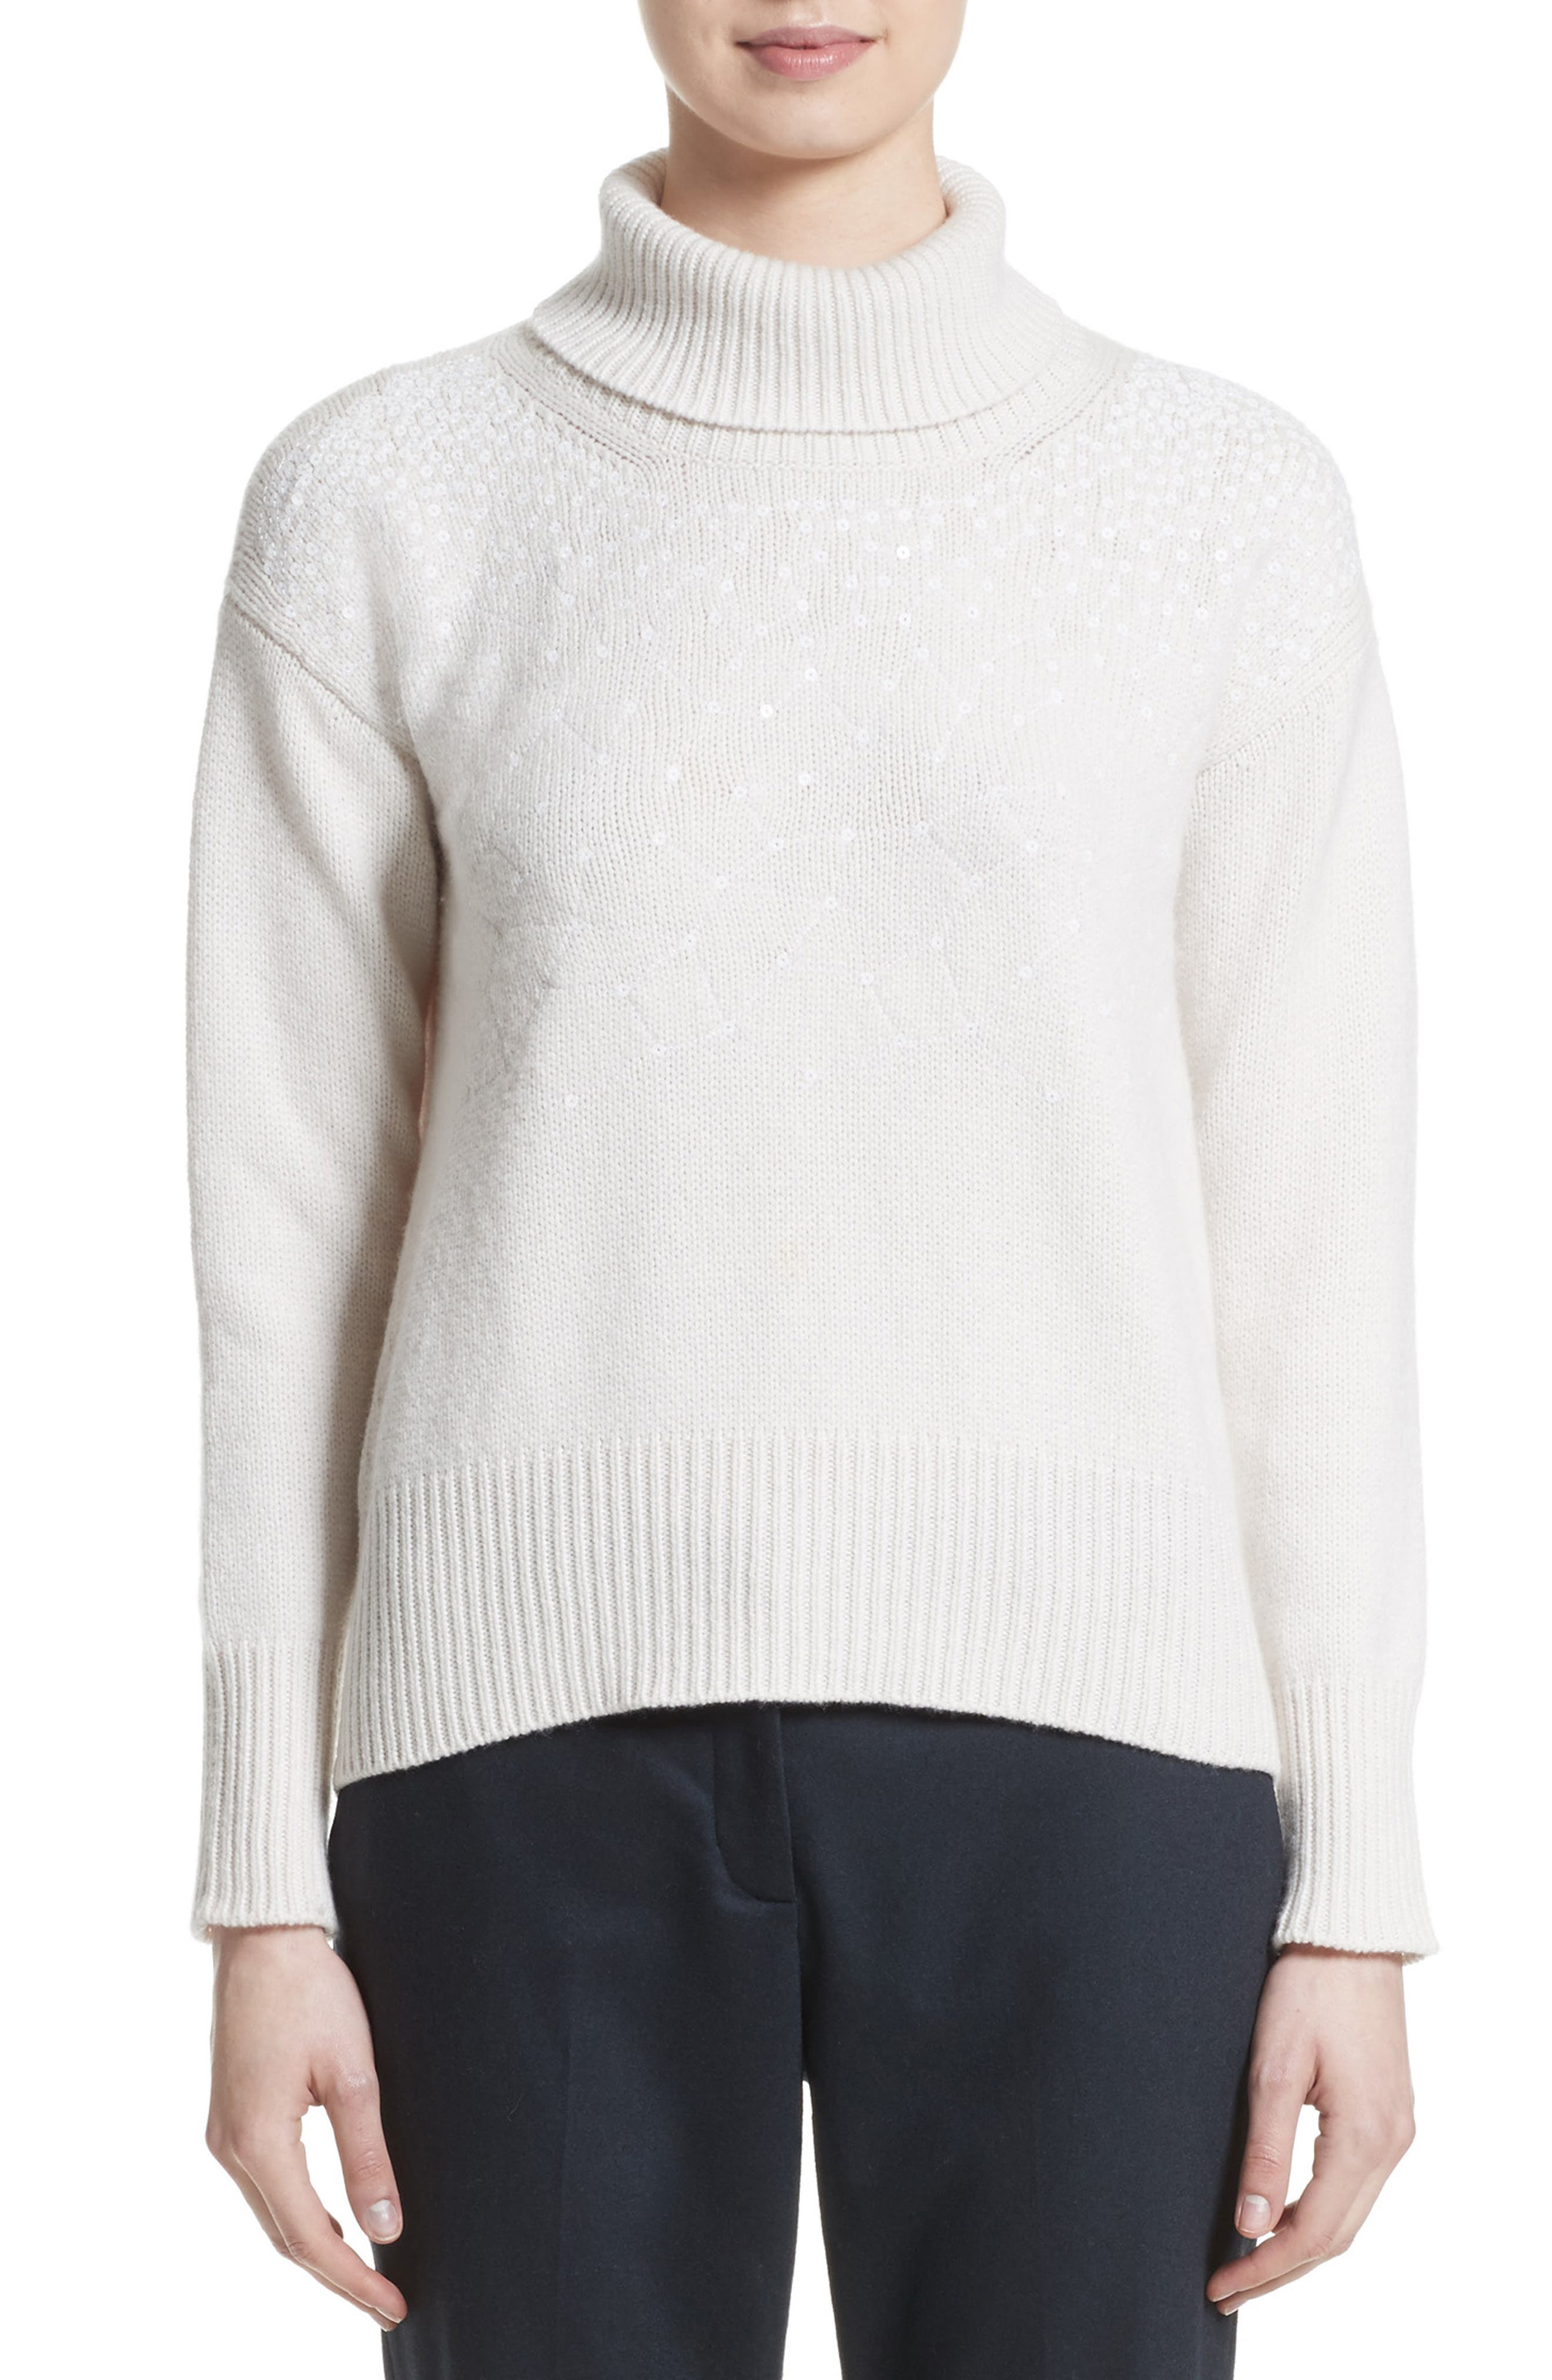 Fabiana Filippi Sequin Embellished Wool Turtleneck Sweater (Nordstrom Exclusive)